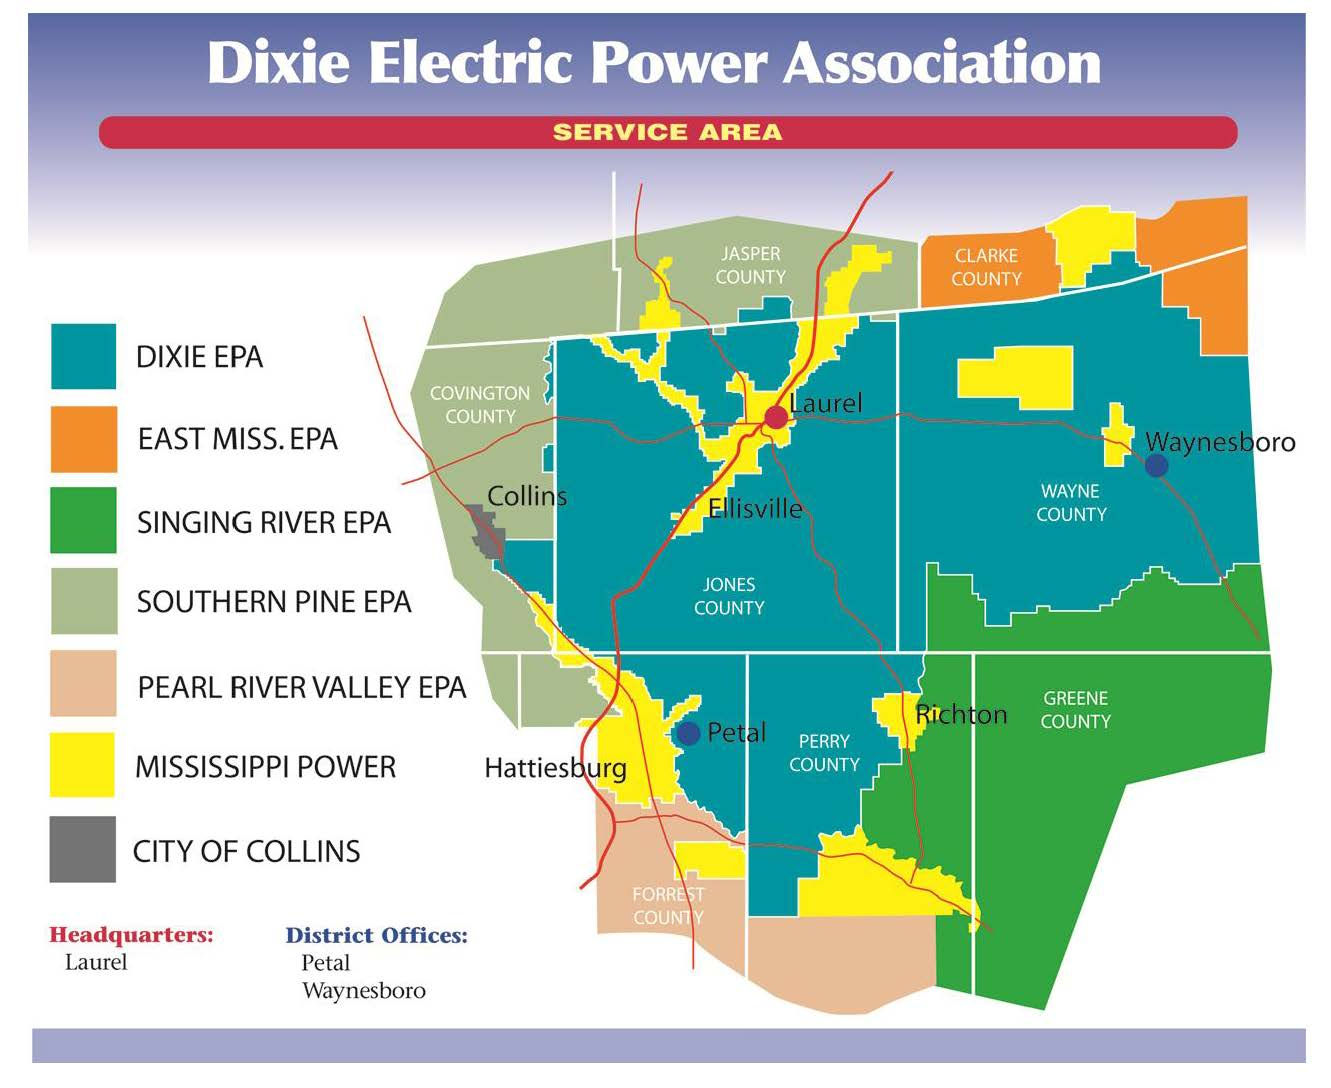 Map of Dixie Electric's service area